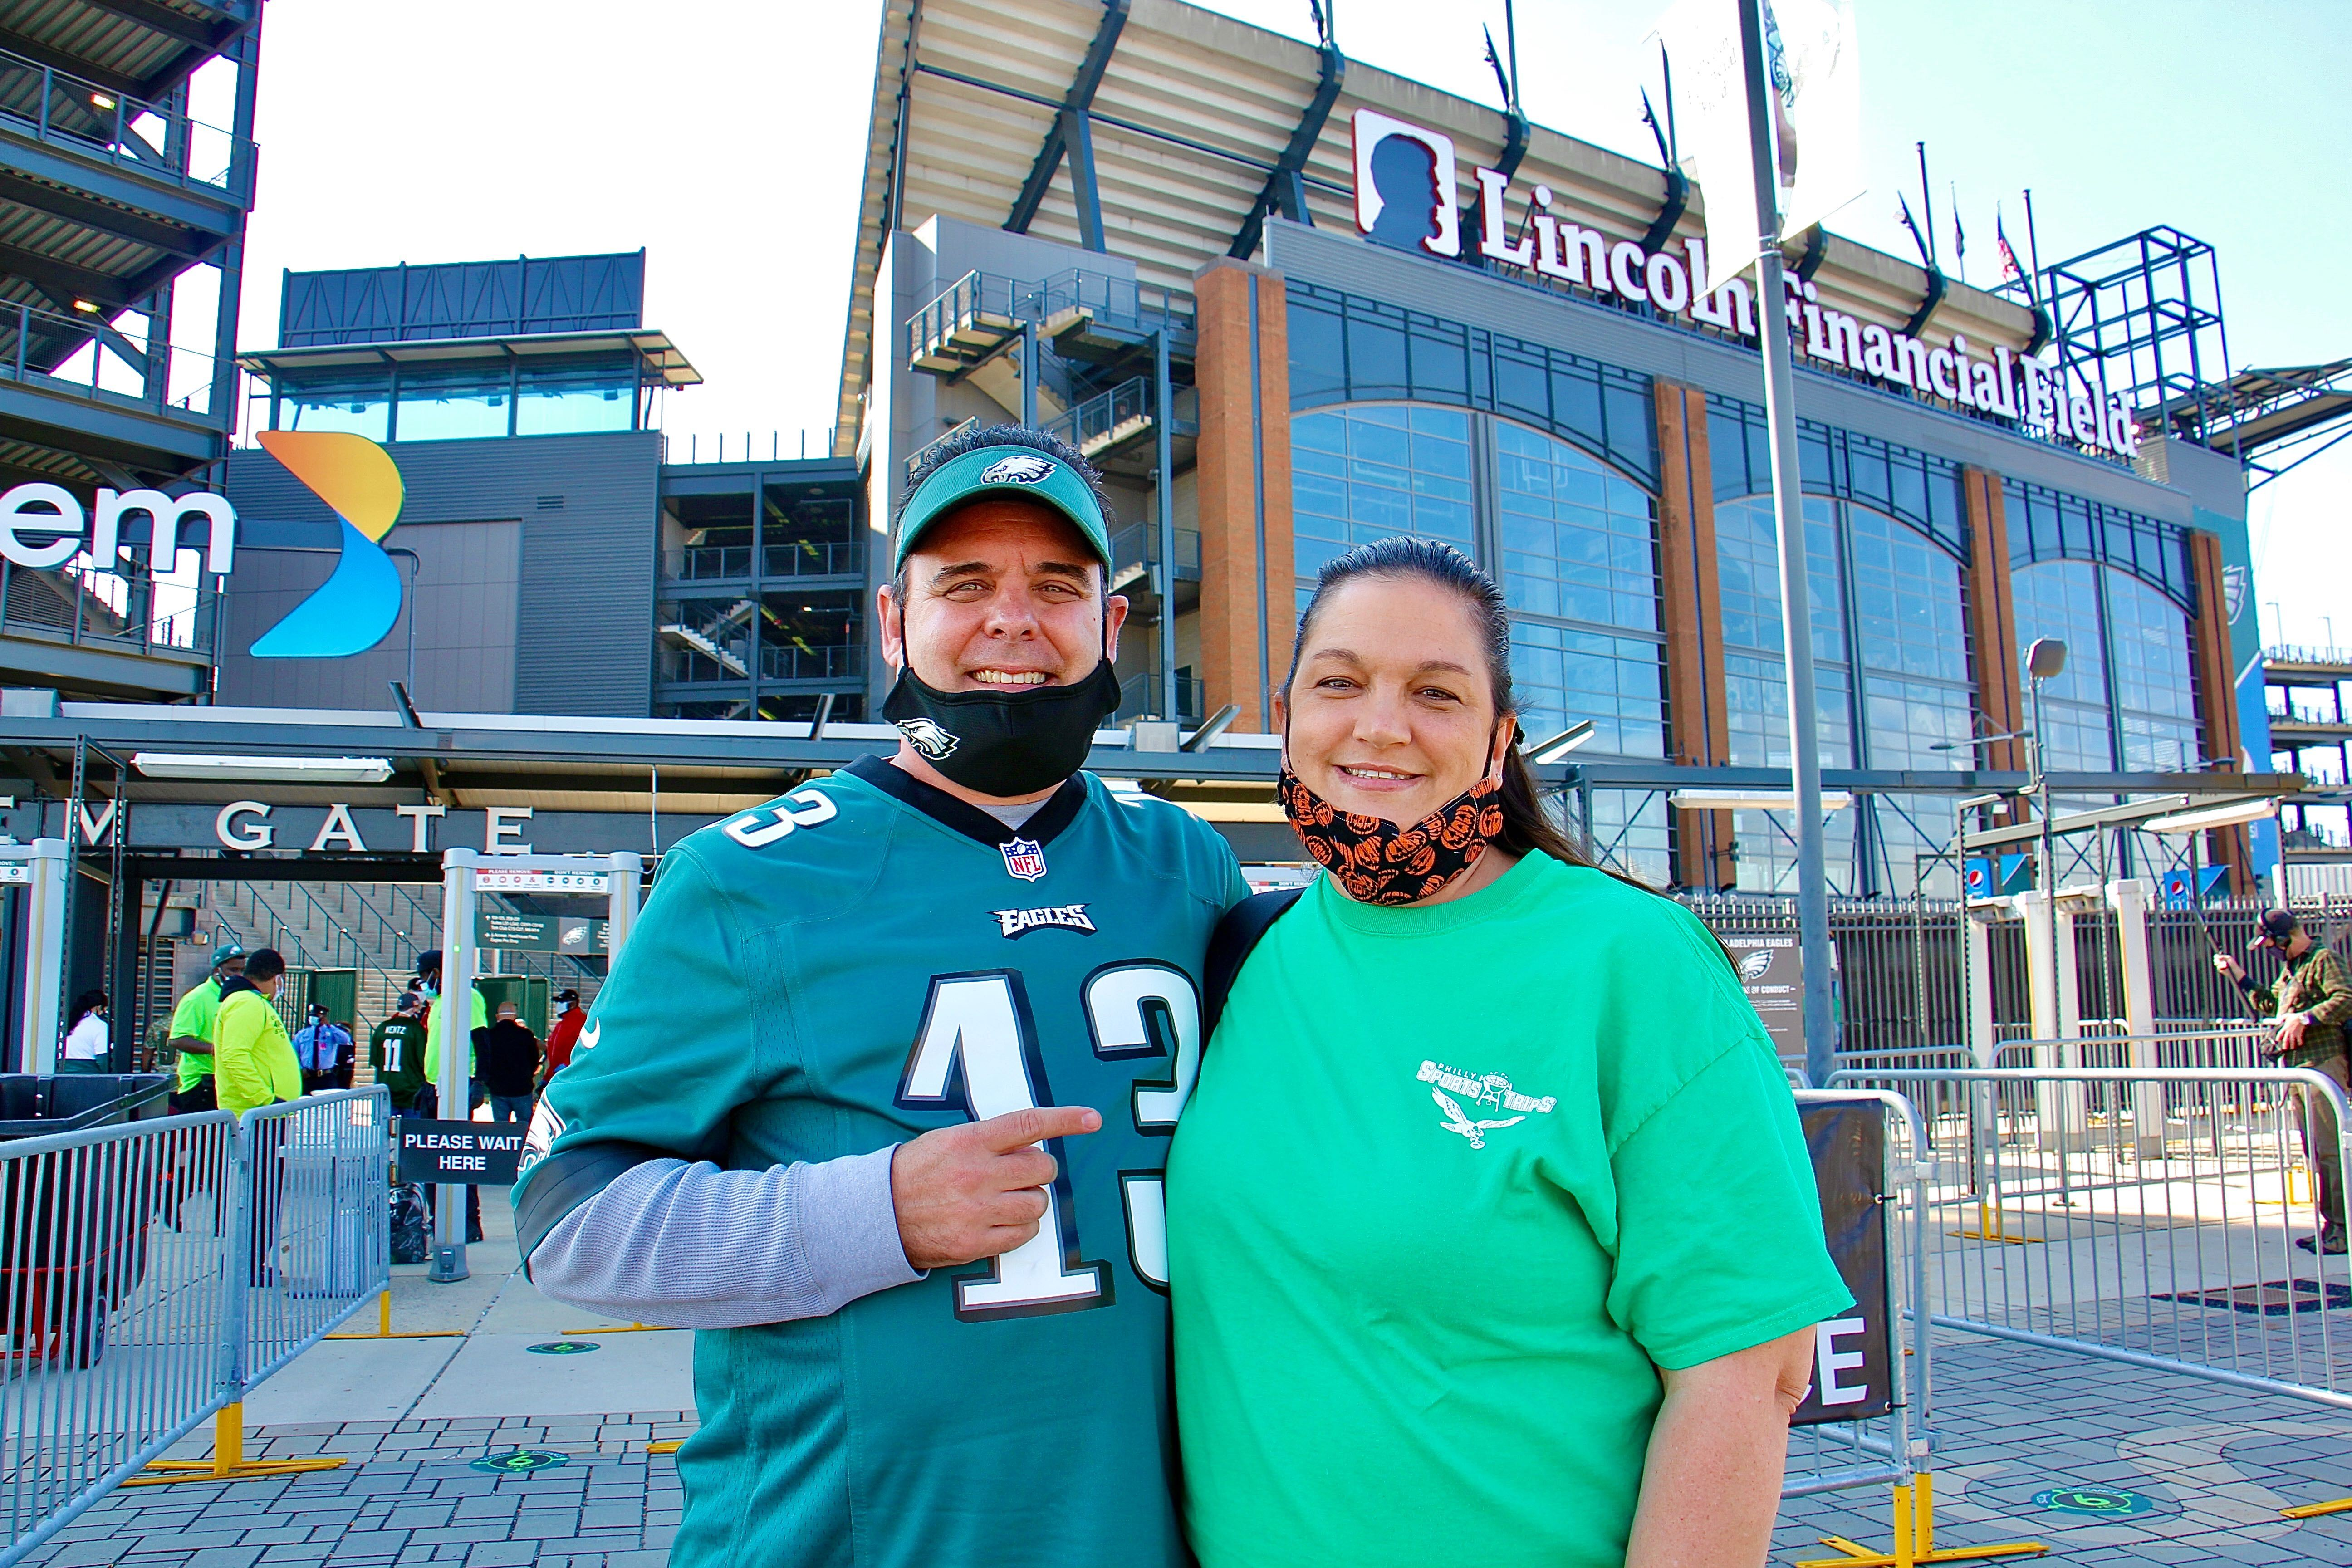 Chris Romanelli and his wife Jennifer prepare to enter Eagles stadium